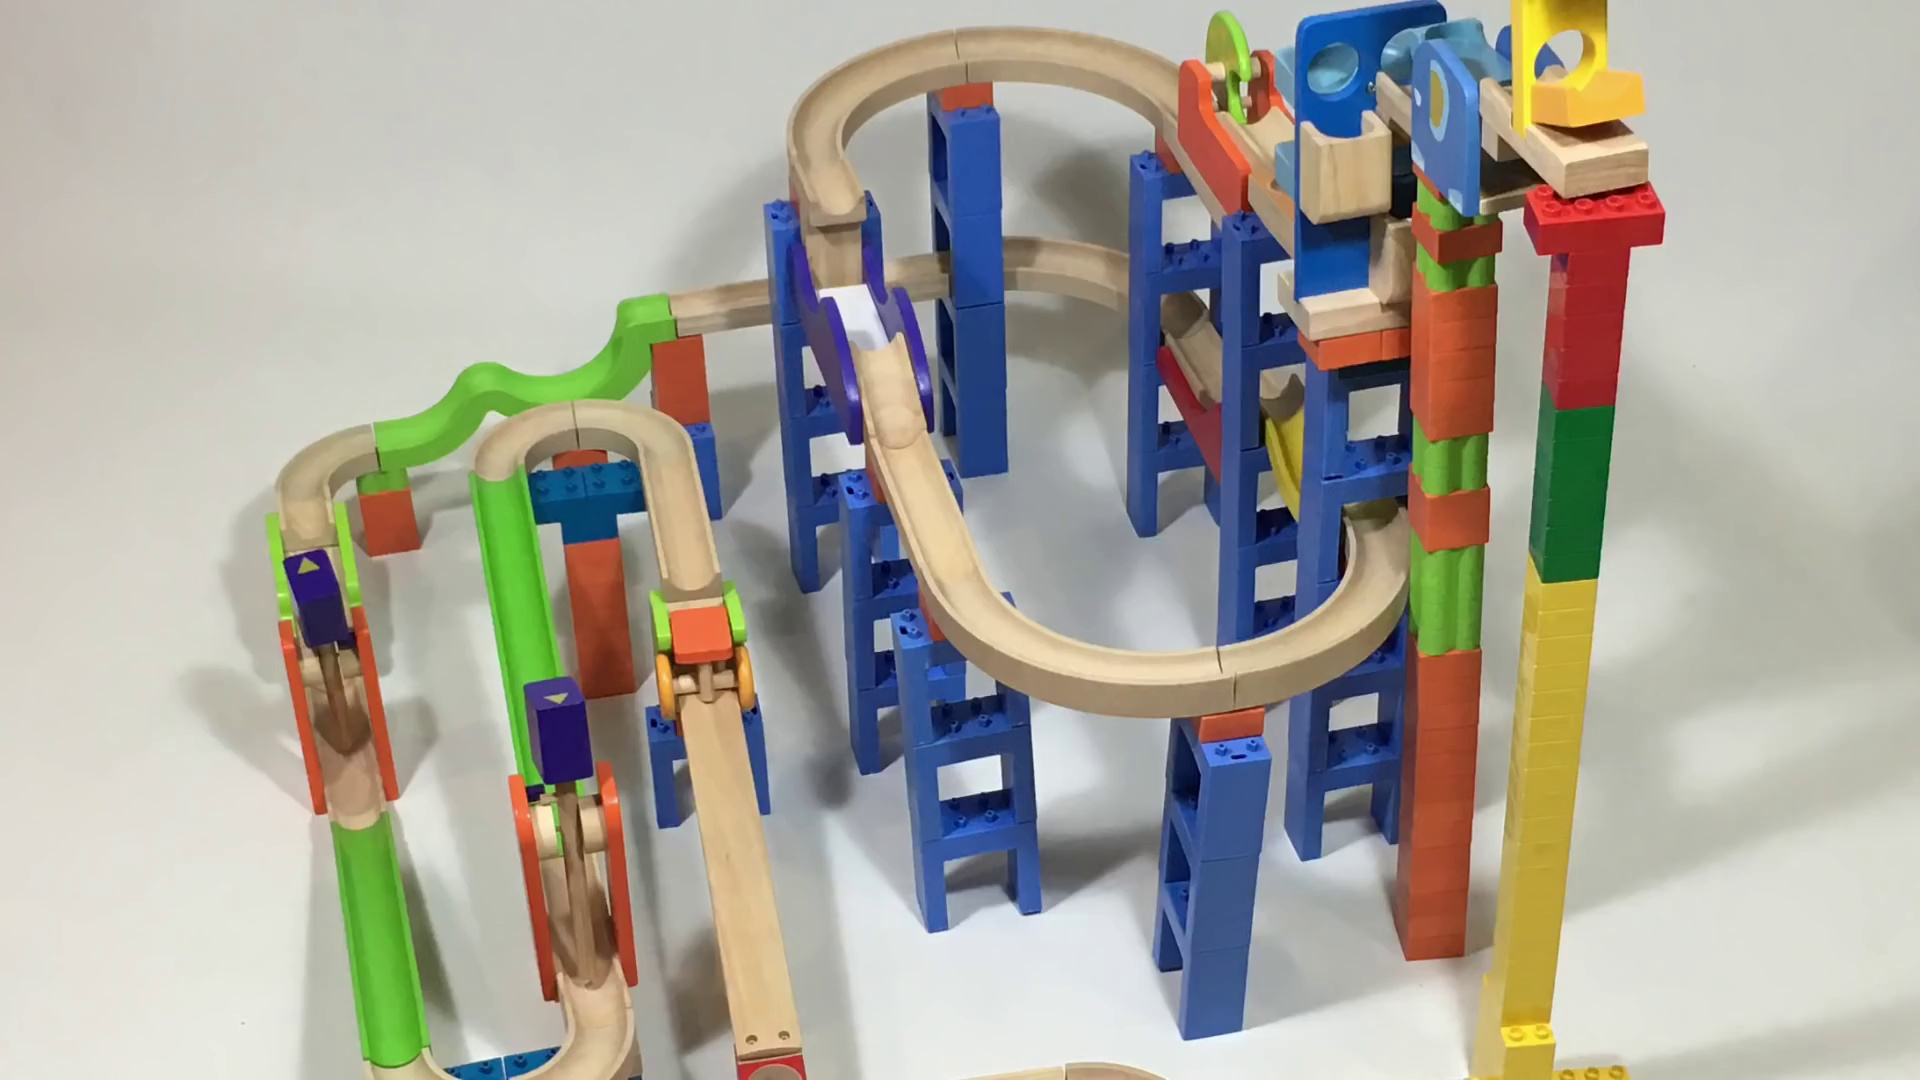 Longest Marble Run Trix Track Ball Run Combination 4 Sets Marble Maze || Keith's Toy Box